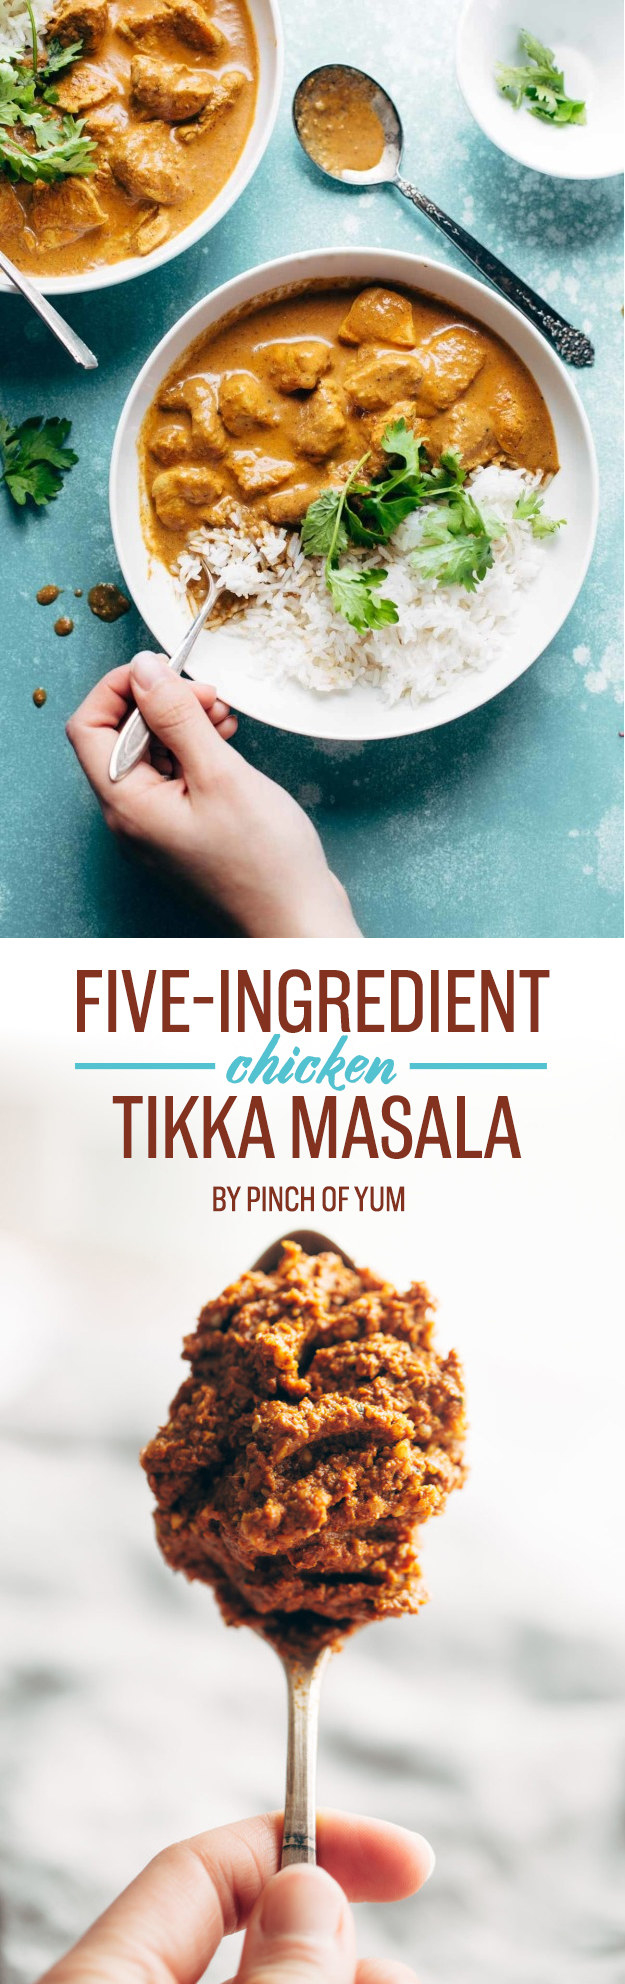 Five-Ingredient Chicken Tikka Masala